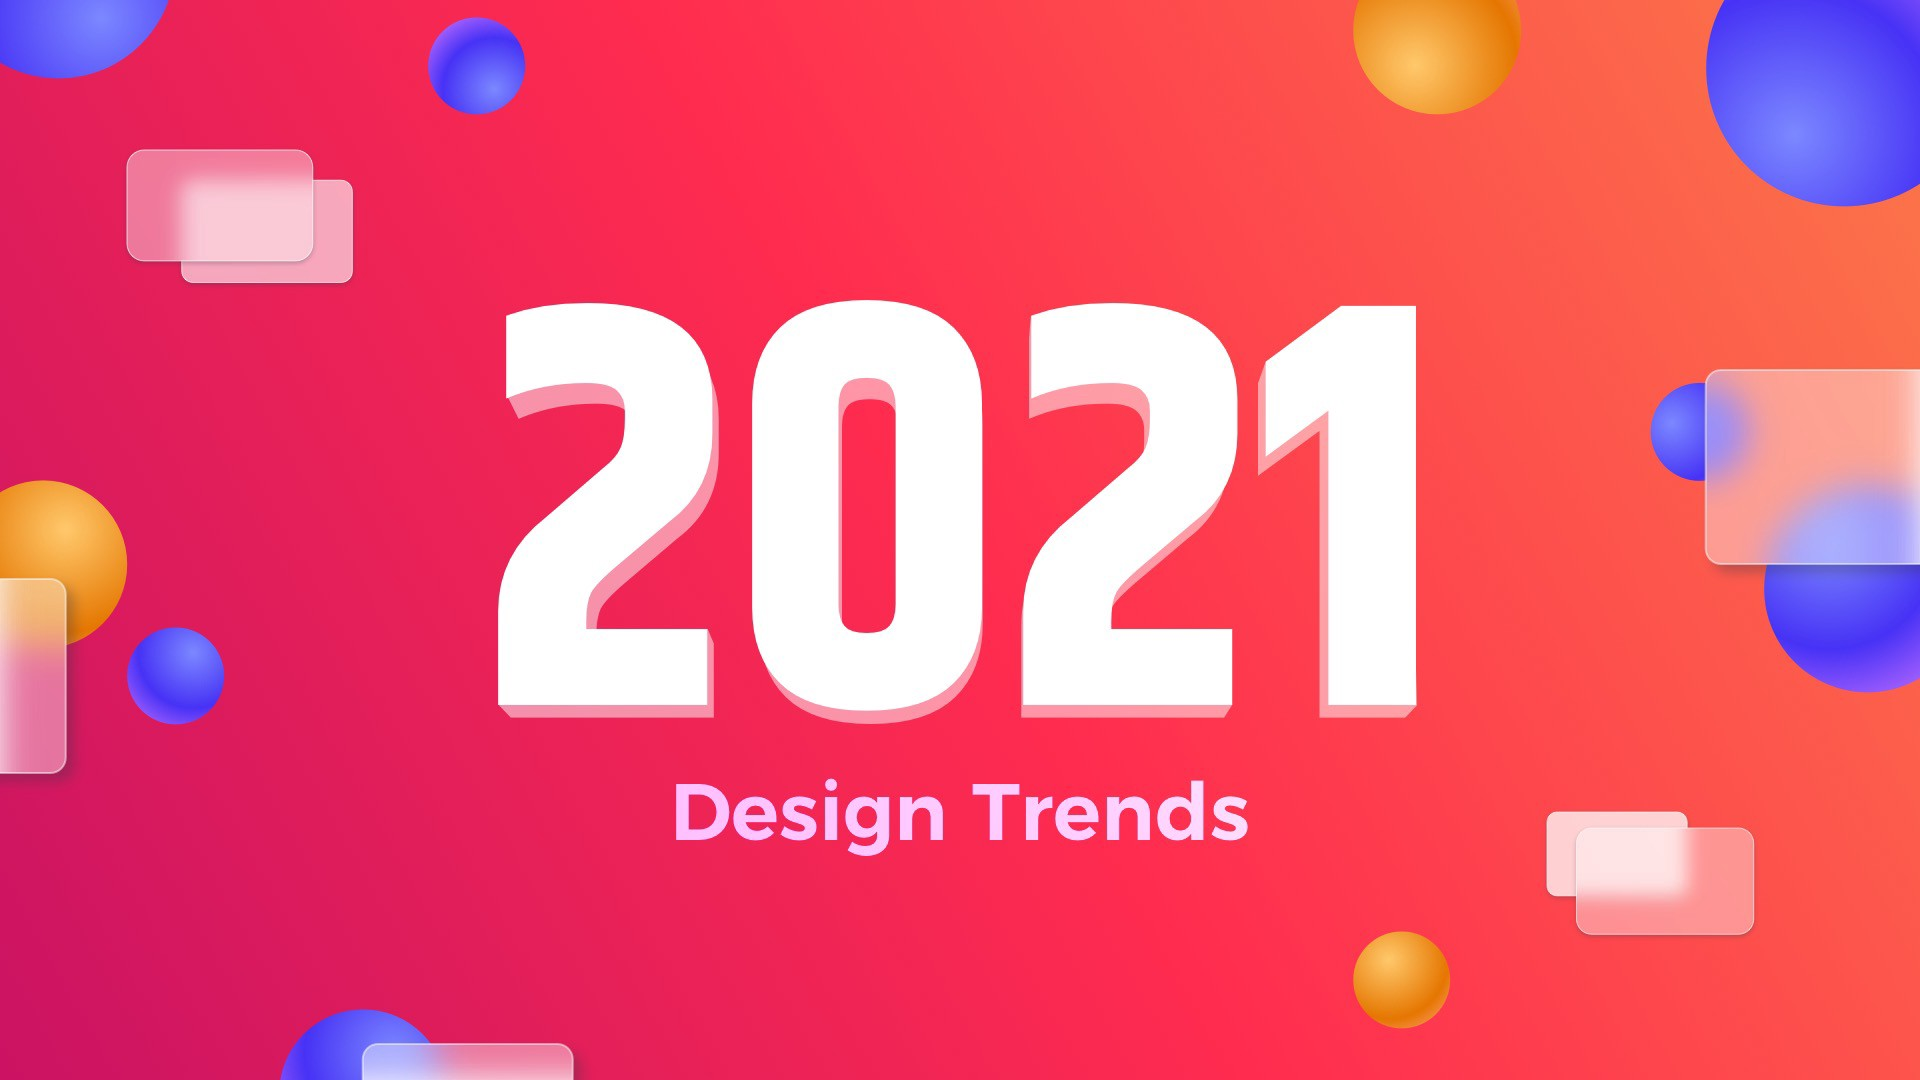 2021 design trends featured image